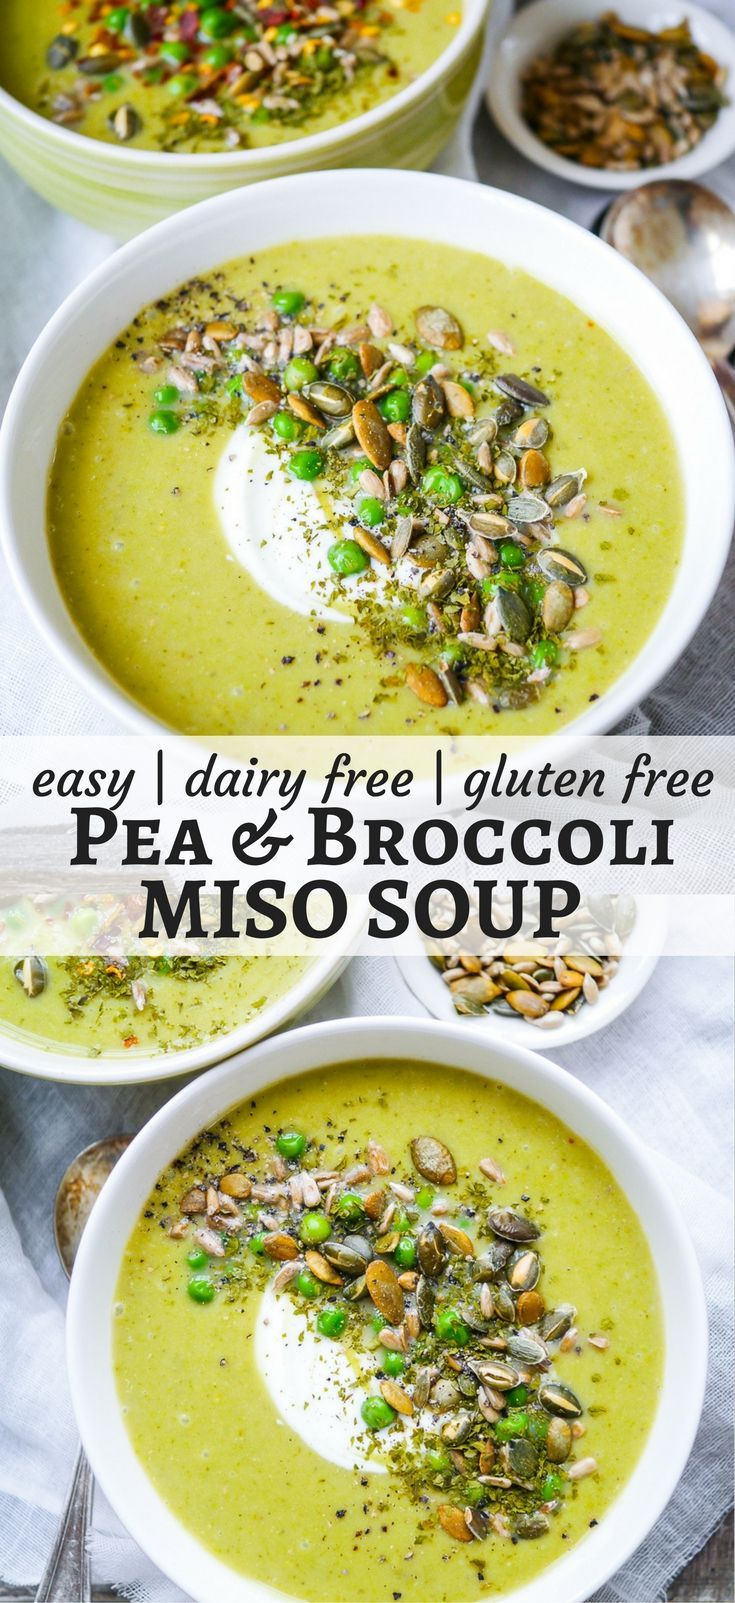 Pea and Broccoli Miso Soup is nourishing, comforting and easy to make. Gluten free, dairy free and sugar free, a healthy vegan hug in a bowl! #broccolisoup #vegan #soup #healthy #glutenfree